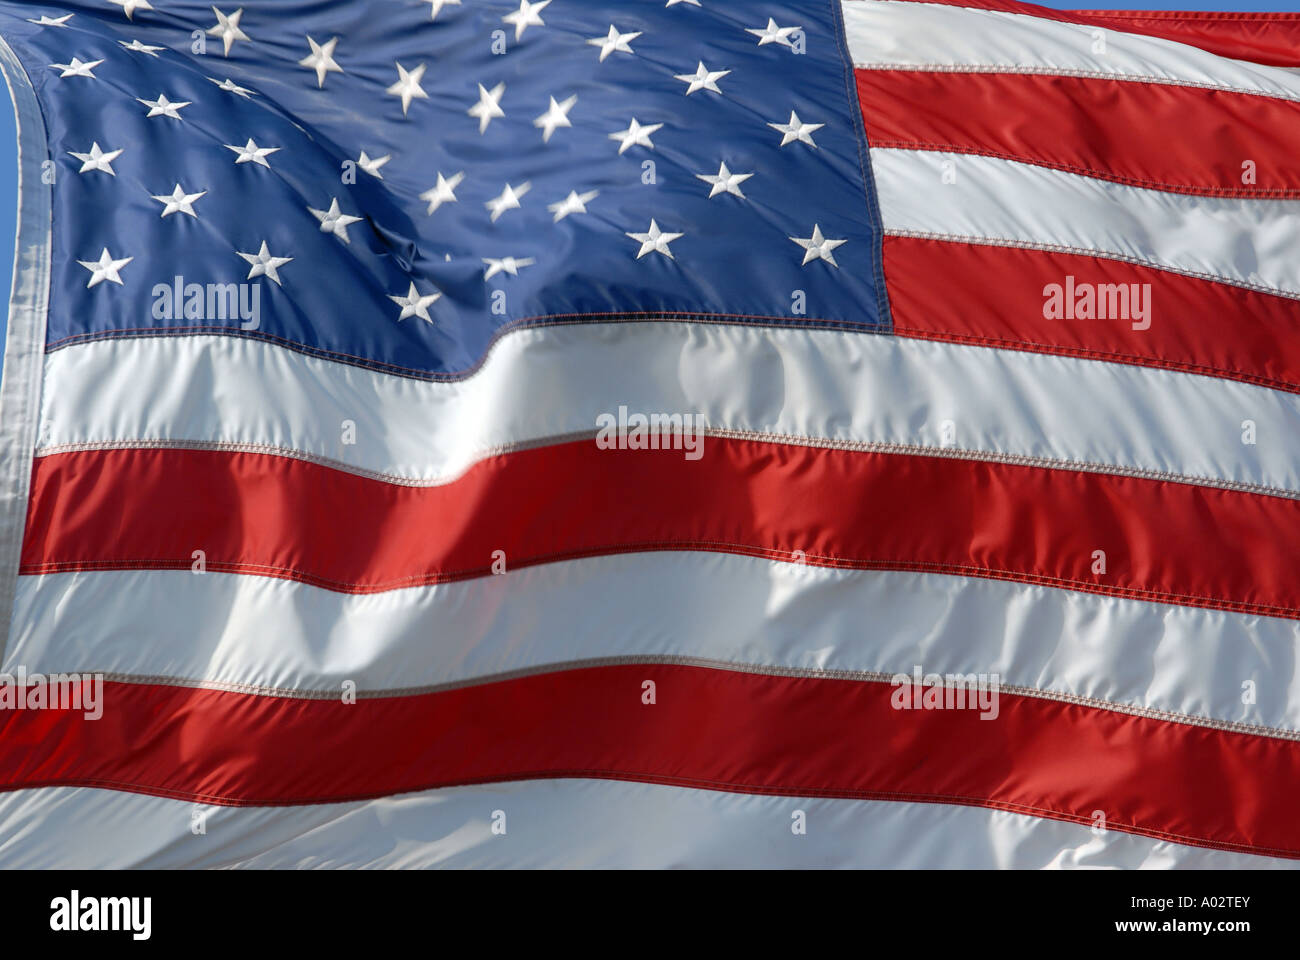 American Flag blowing in wind - Stock Image